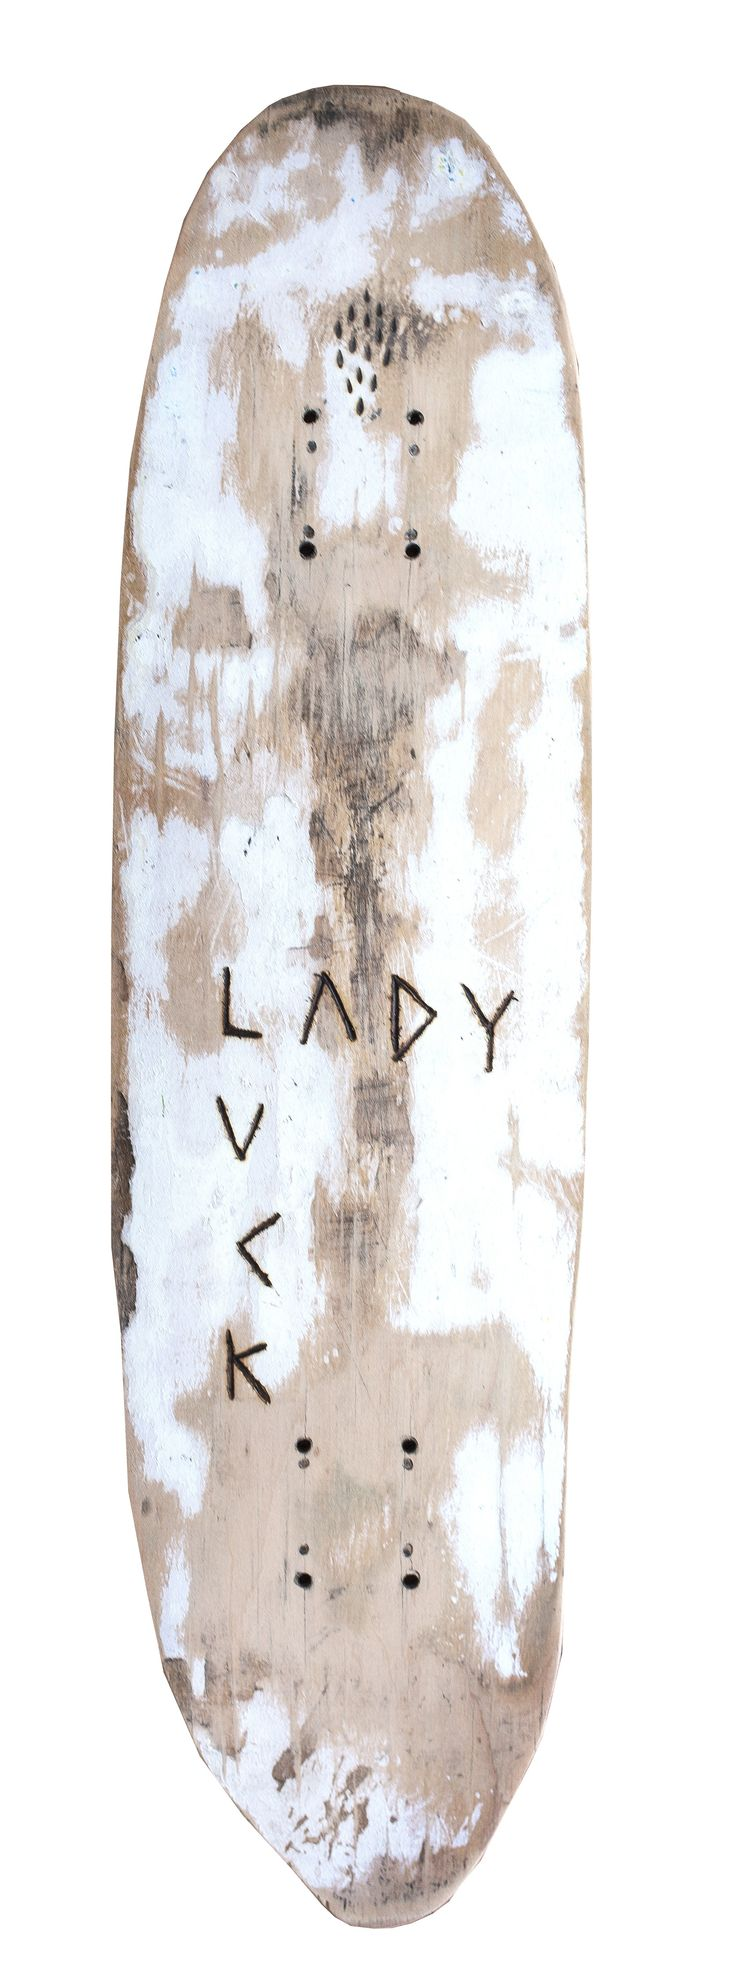 Lady Luck | Part of the Skateboard Trophies Series by Luke Chiswell | Buy Affordable Art Online Exclusively on Tappan Collective